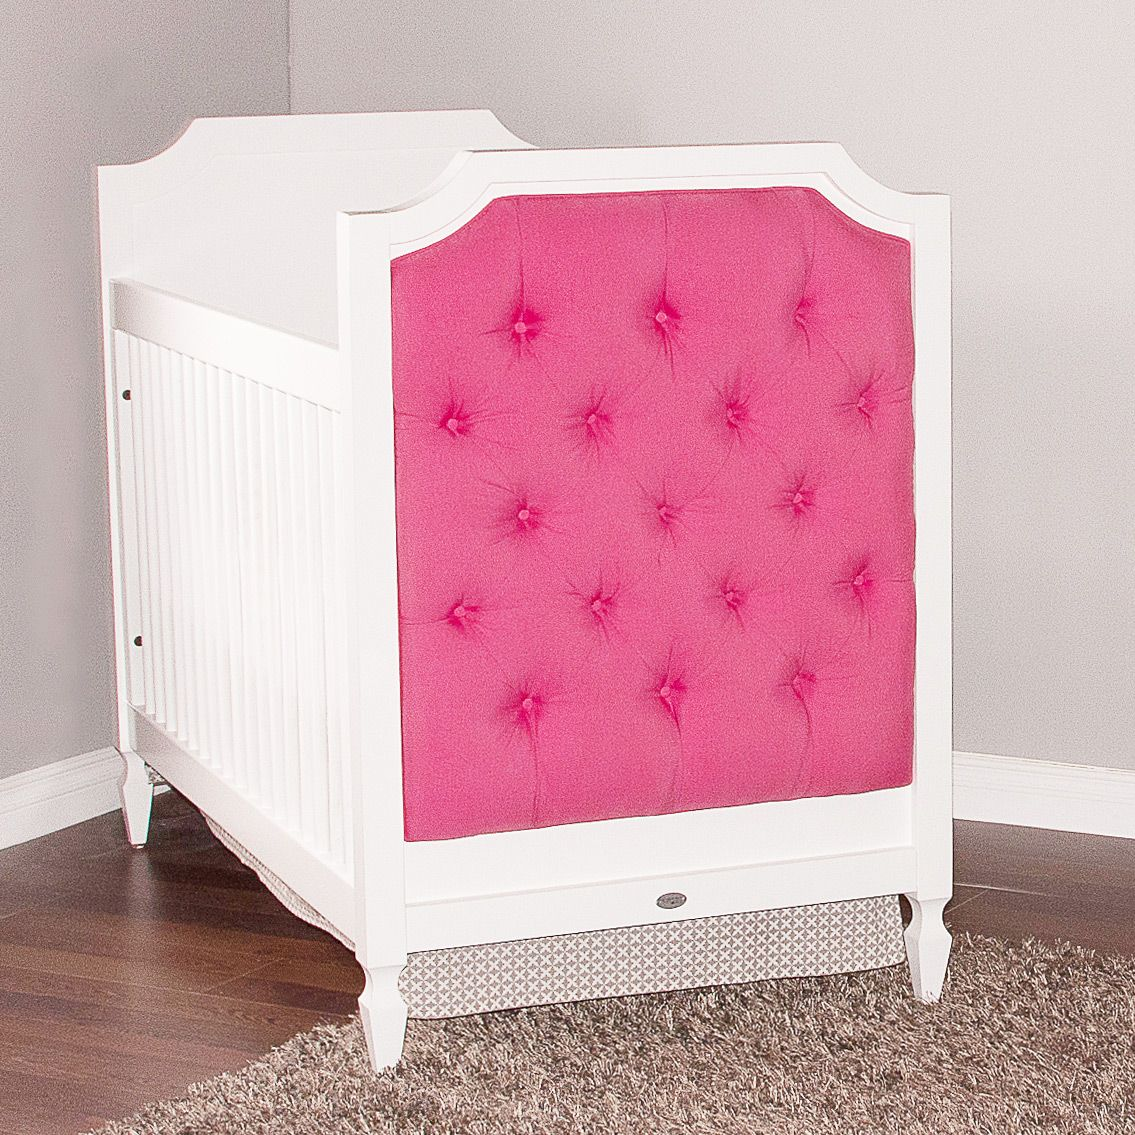 Hot Pink Upholstered Crib By Newport Cottages #nursery #crib